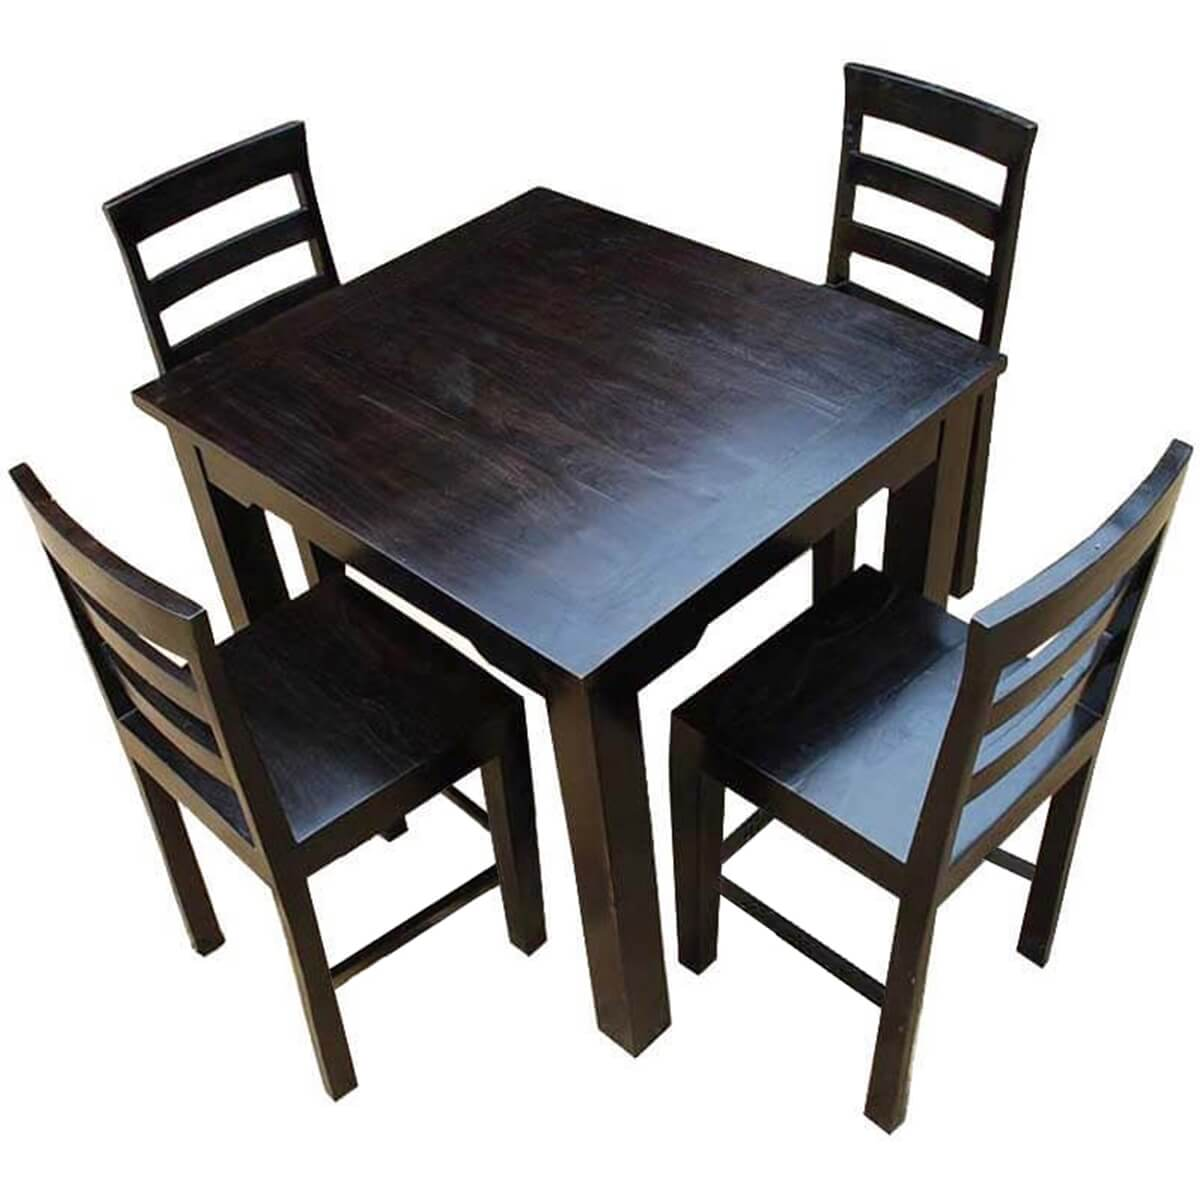 solid wood counter height dining table chairs set. Black Bedroom Furniture Sets. Home Design Ideas